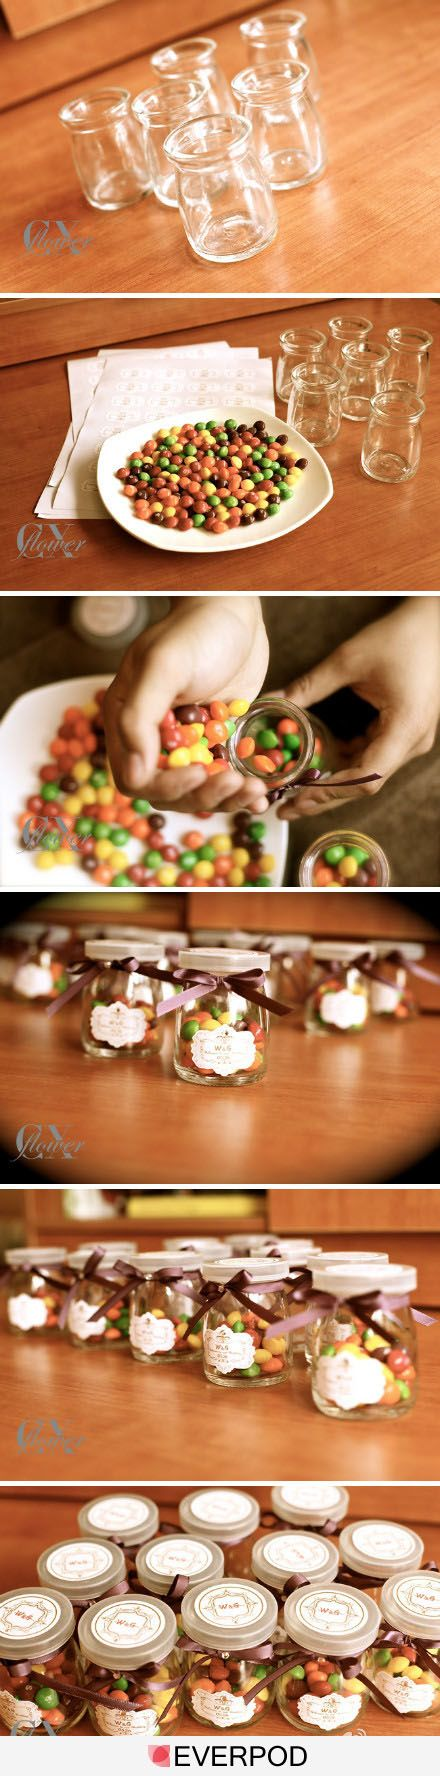 Wedding Giveaways Idea  this would be a nice idea, too, but have to think of a replacement for the sweets